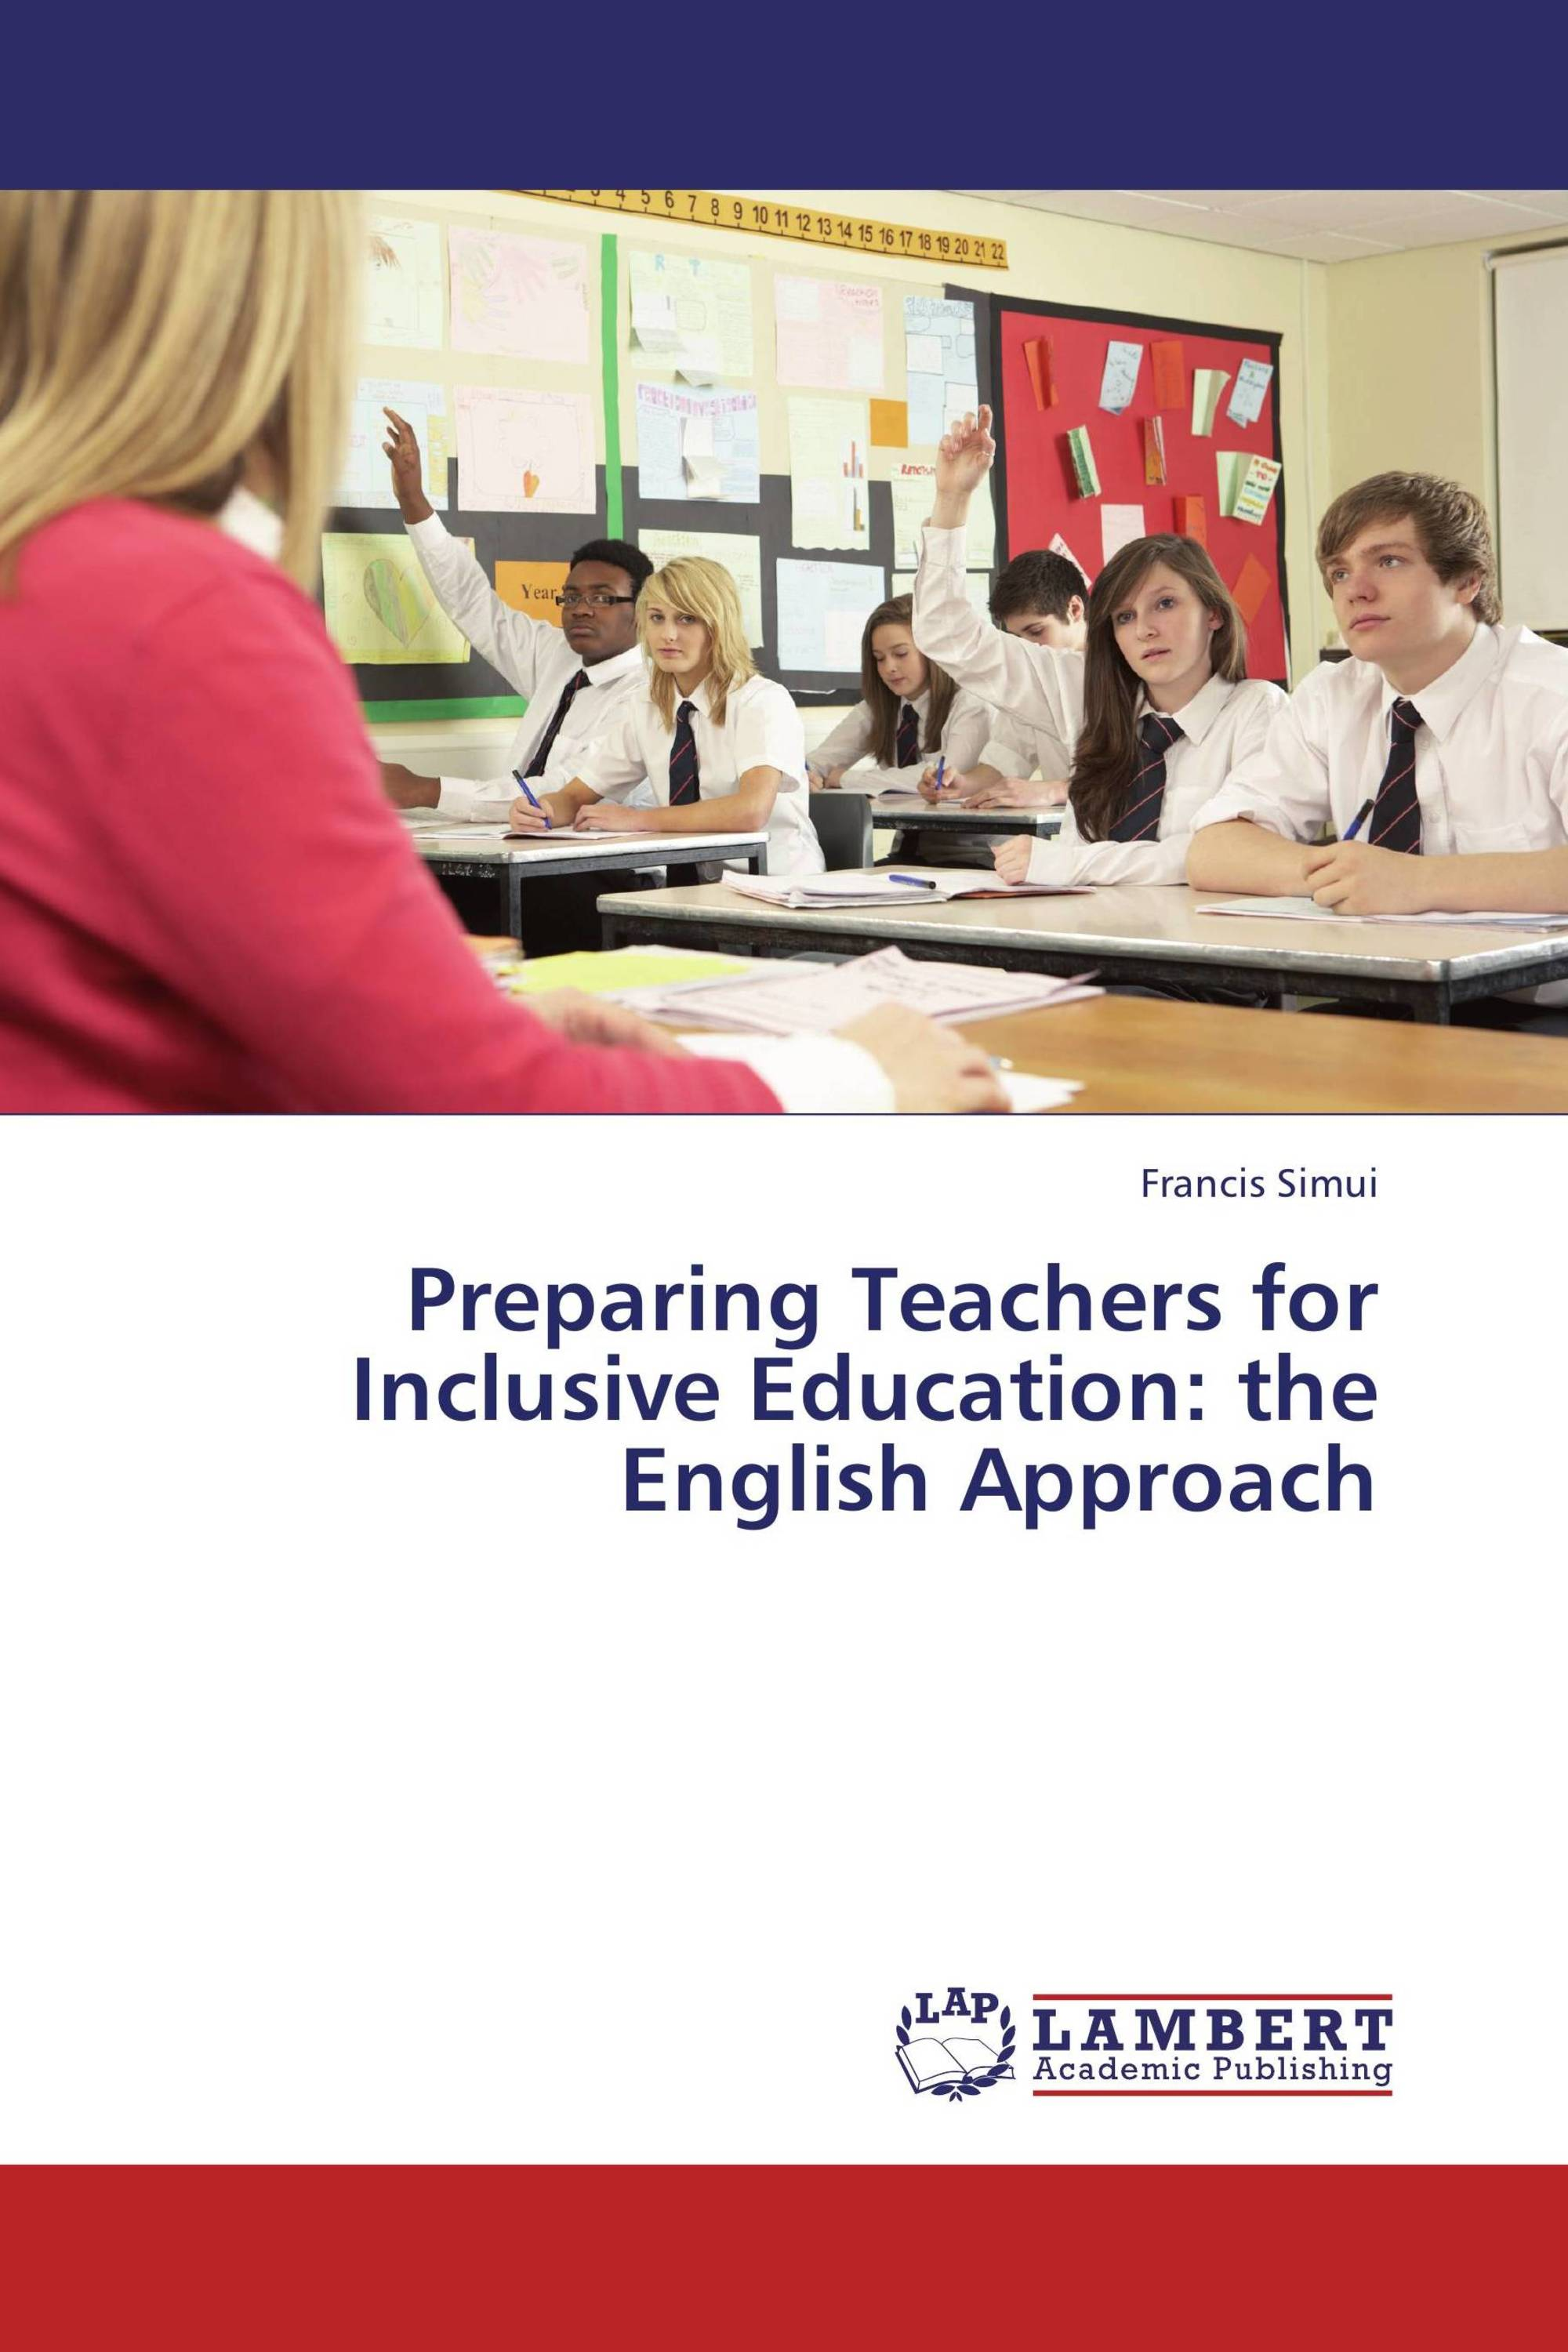 Preparing Teachers for Inclusive Education: the English Approach